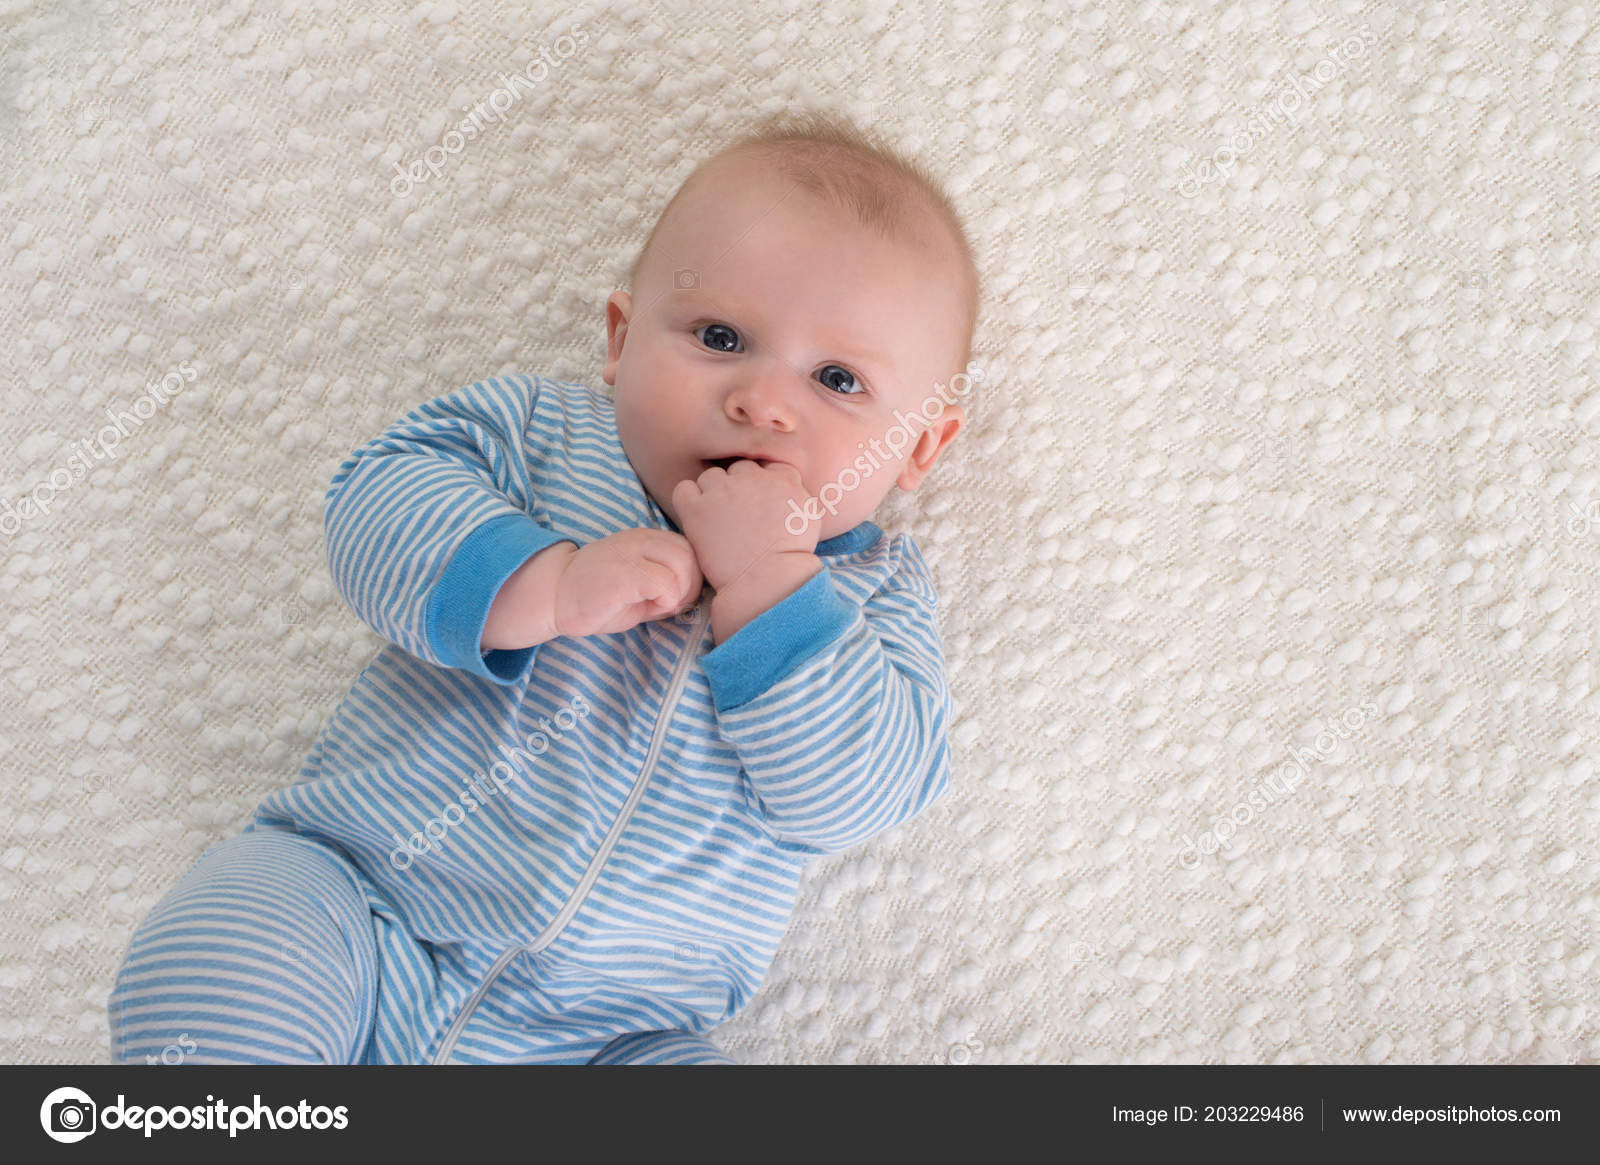 58389889251 A 2 month old baby boy lying on his back on a white blanket. He is wearing  blue and white striped pajamas and has his hand in his mouth and is looking  ...